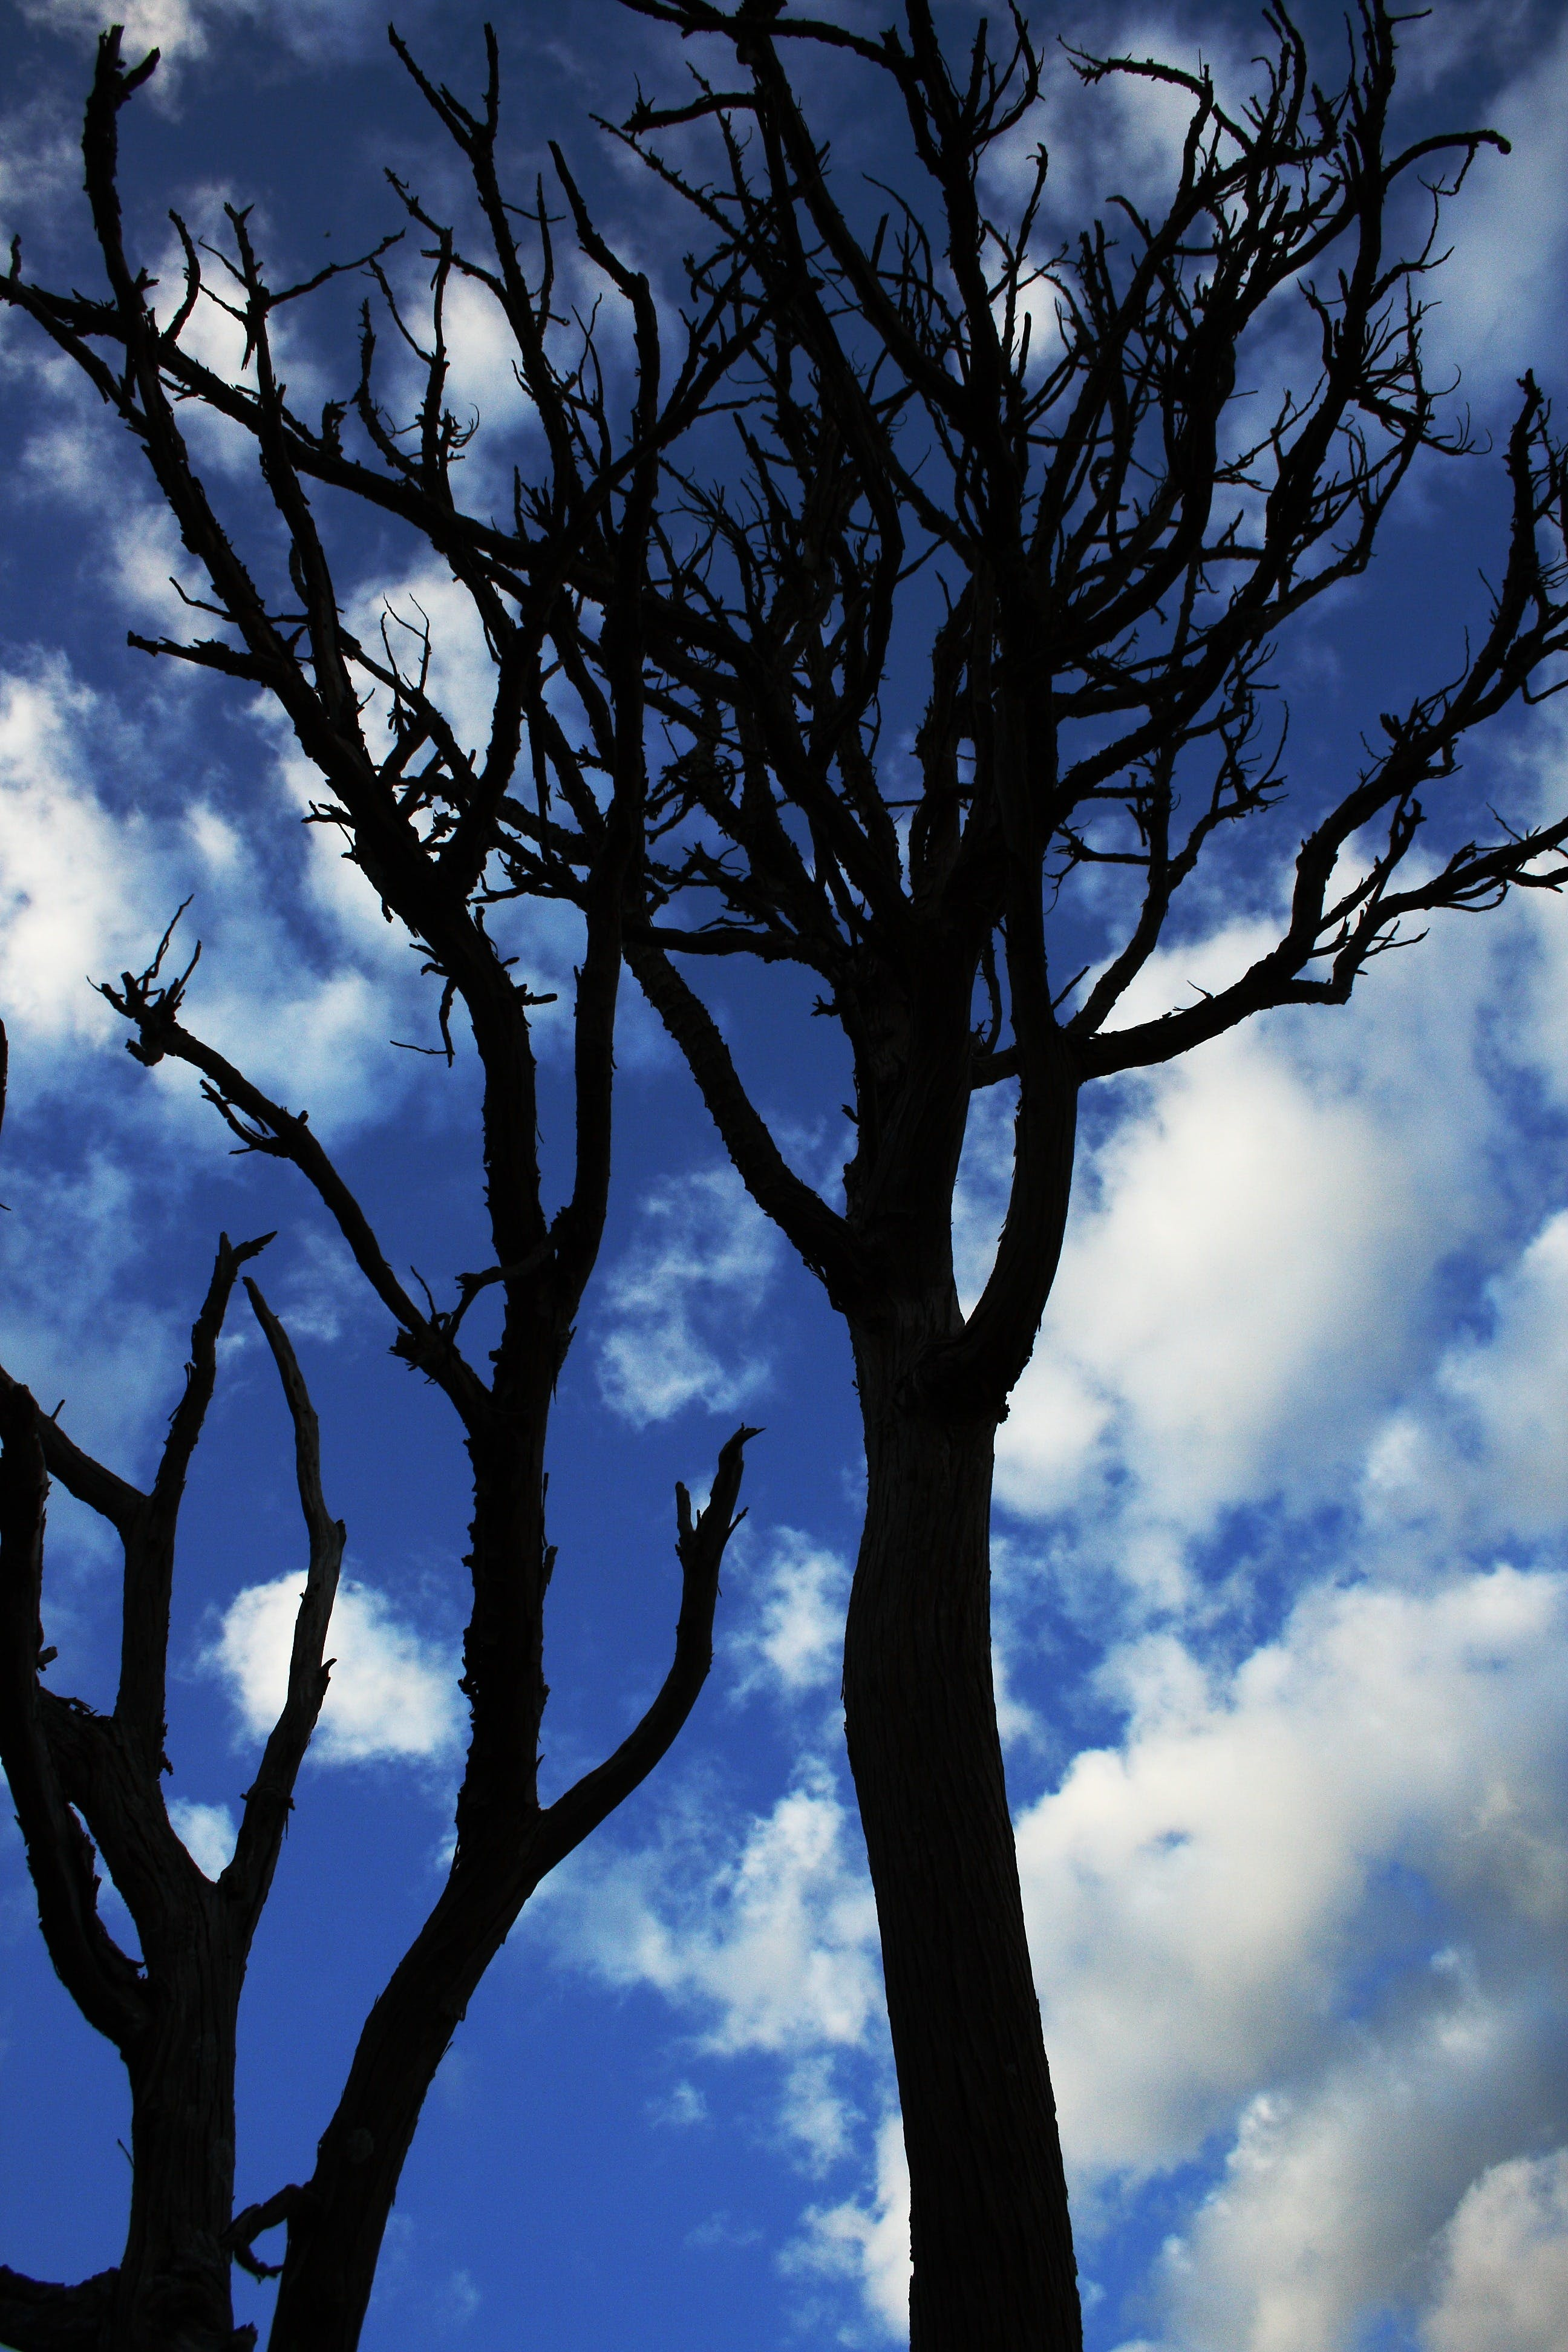 Dead Trees Under White Cloudy Blue Sky